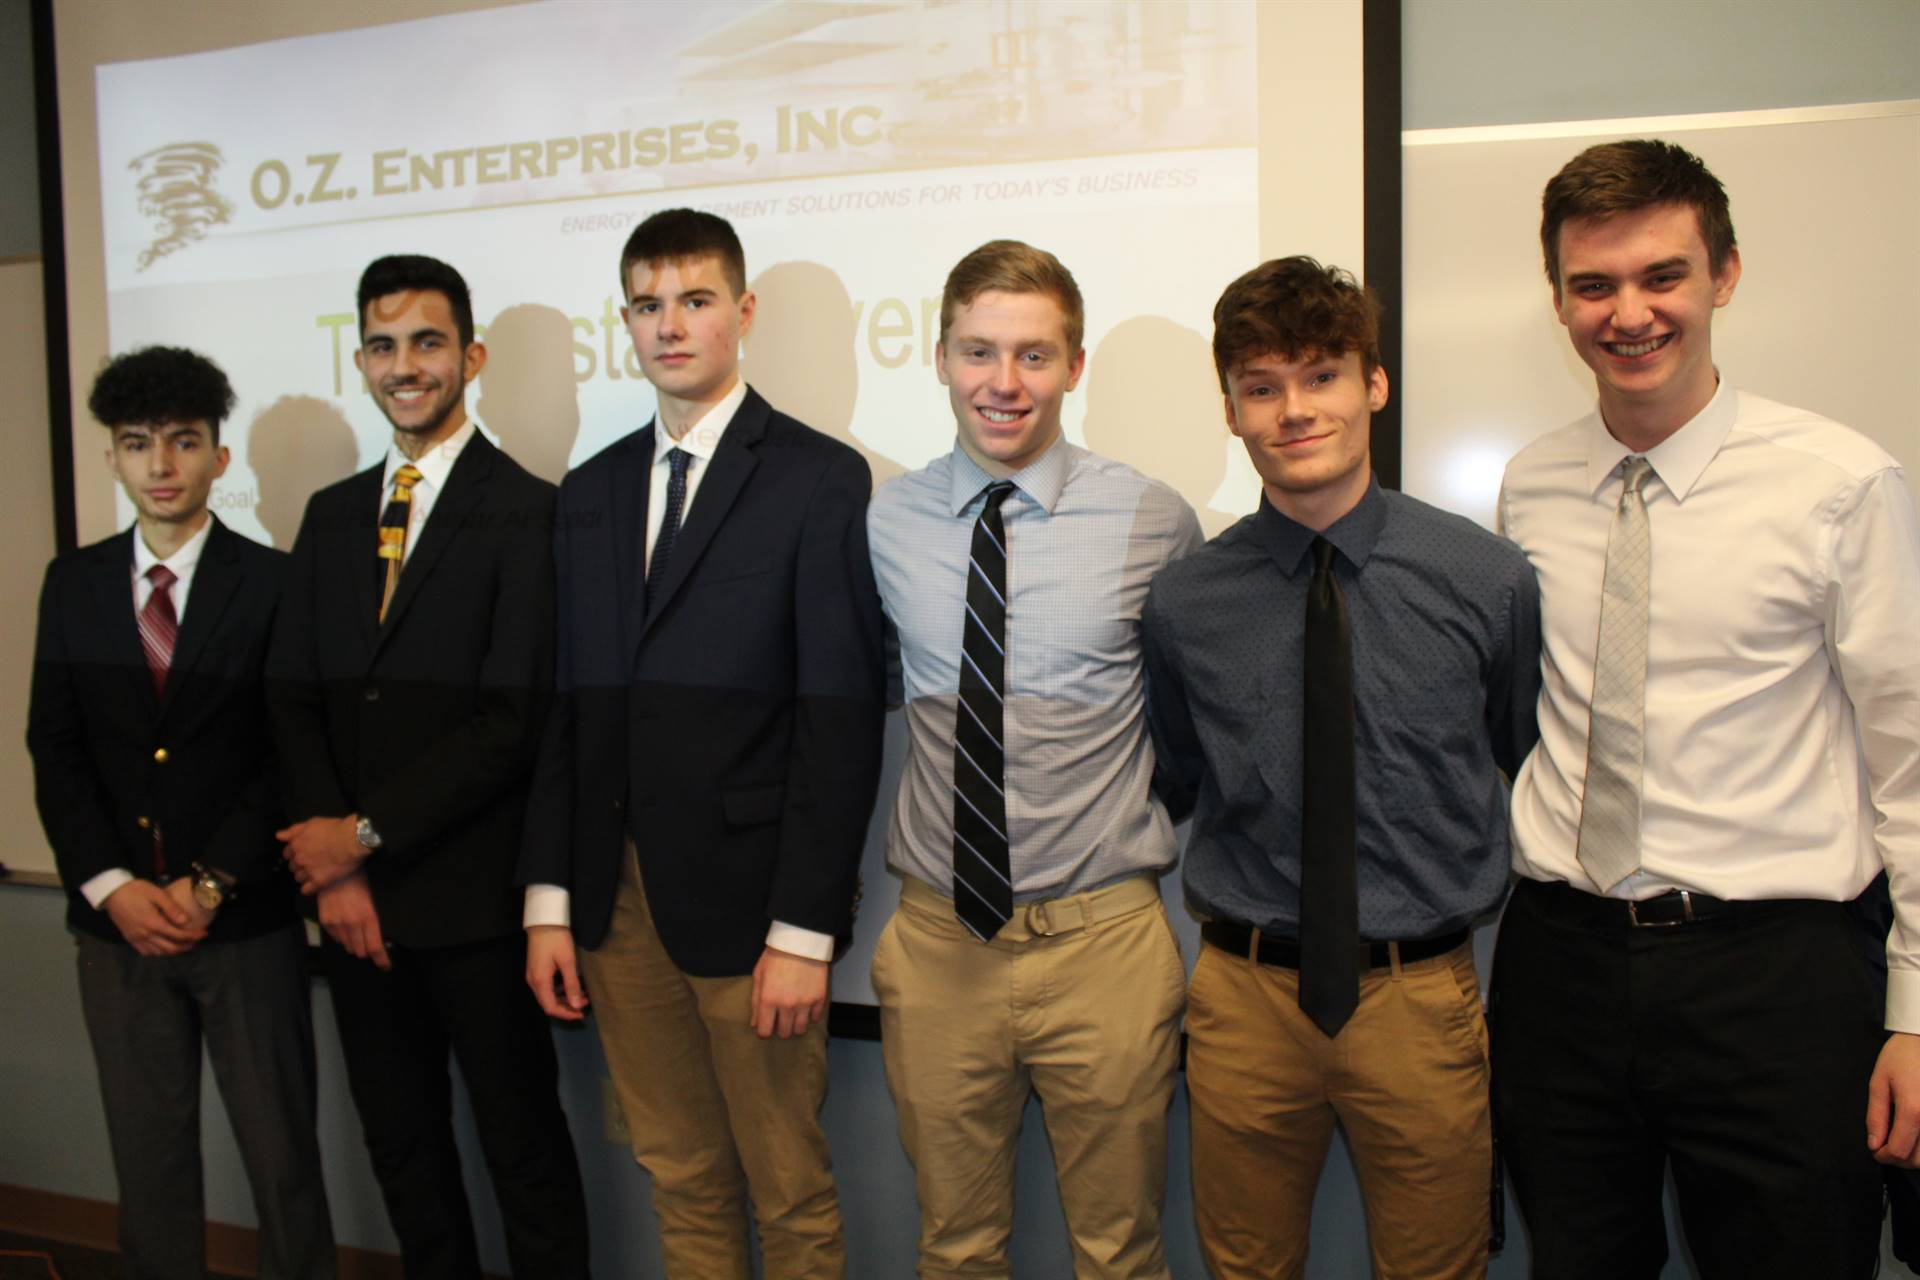 The six CIM class students who presented to O.Z. Enterprises